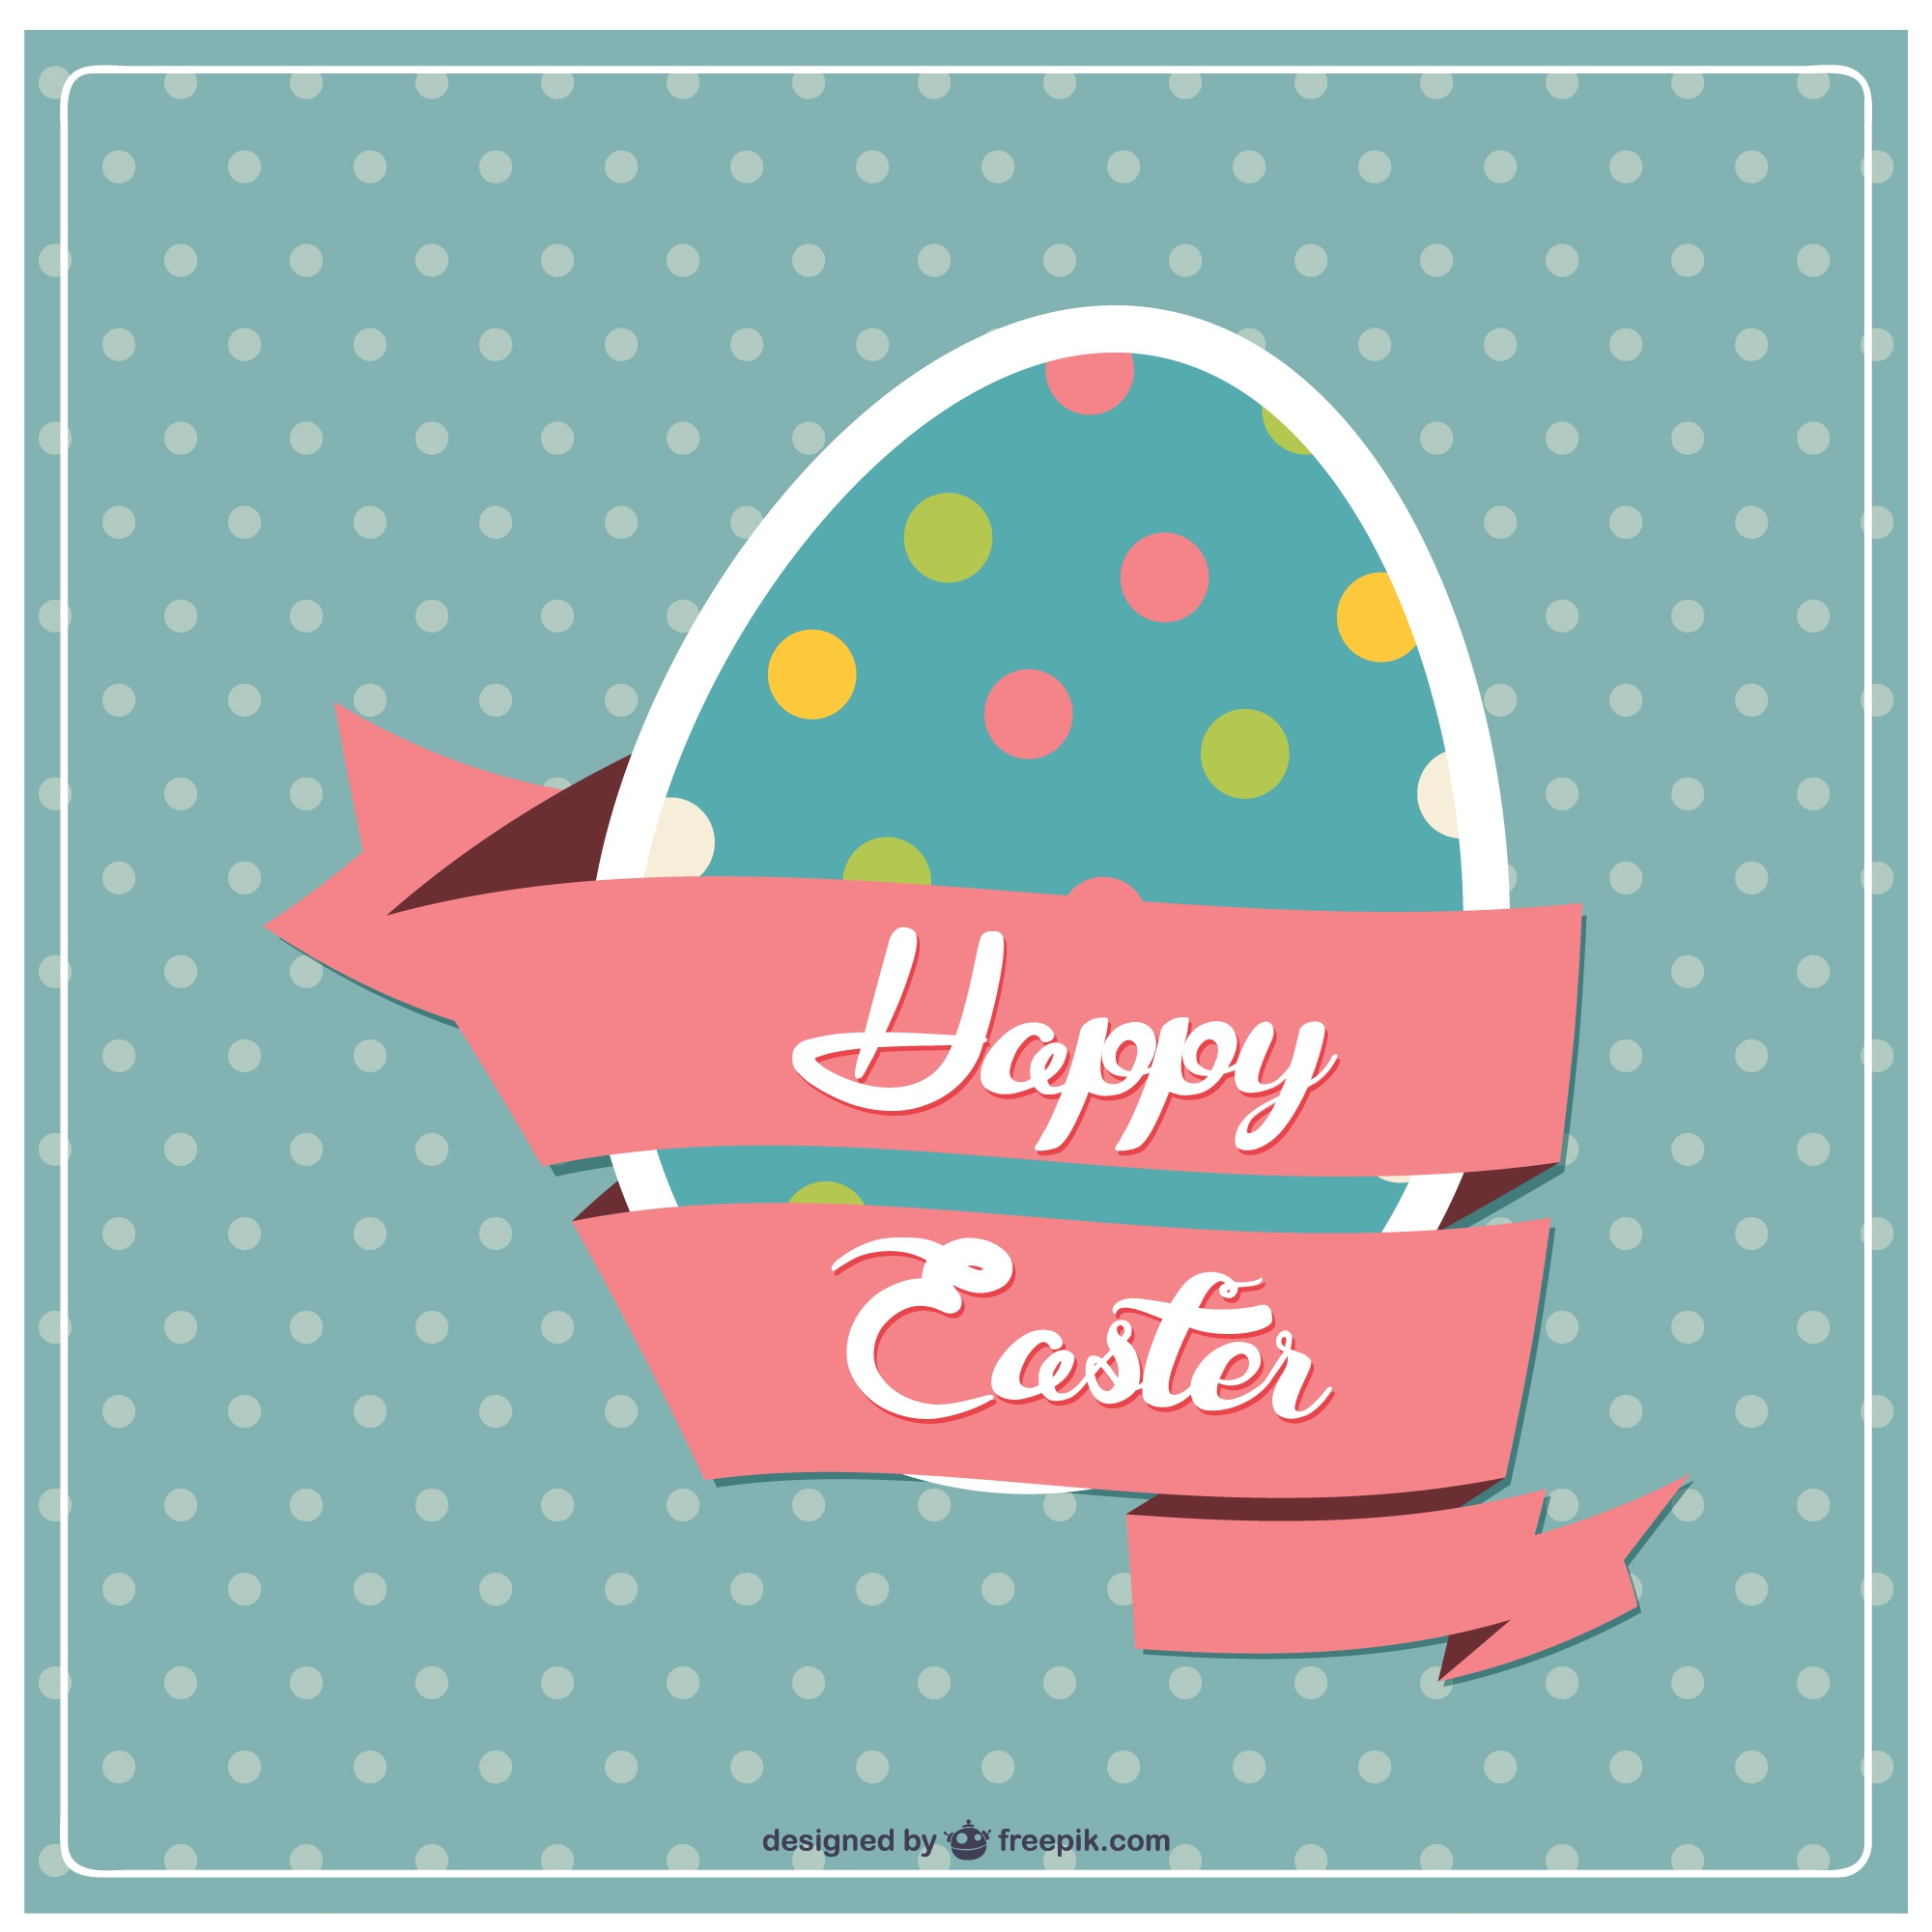 Image result for HAPPY EASTER BASEBALL THEME